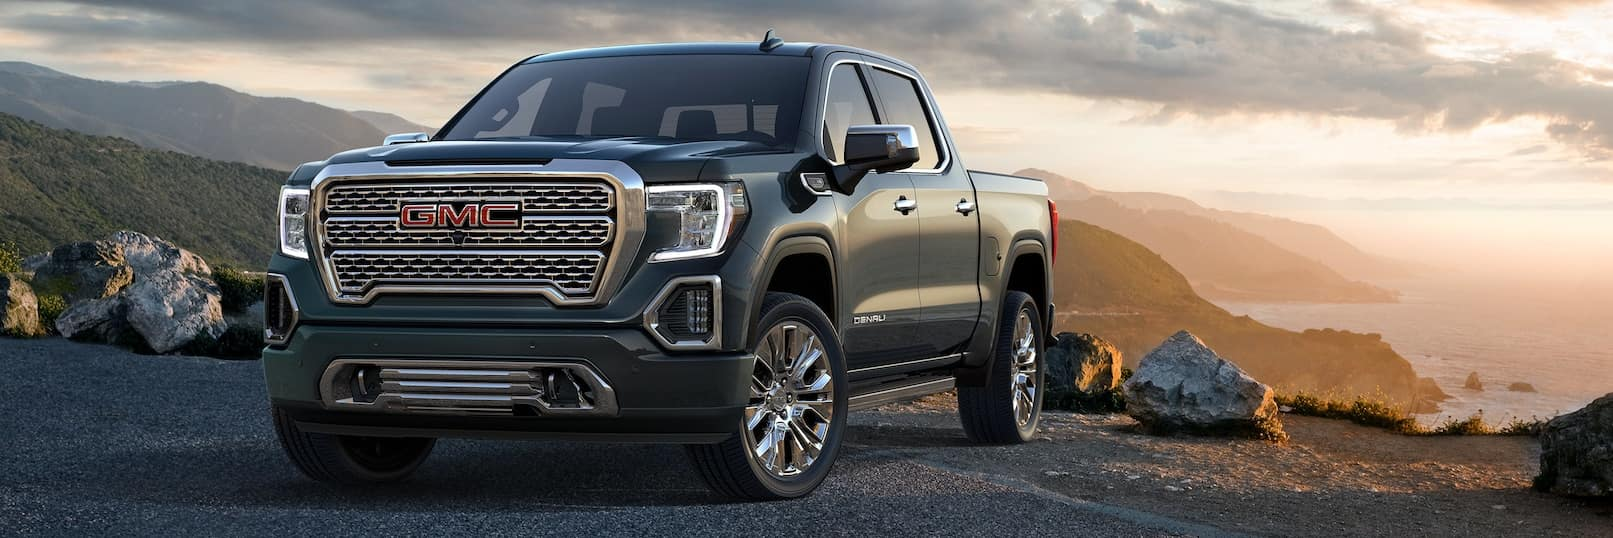 Car Dealerships In Texarkana >> Gmc Texarkana Vernon Auto Group